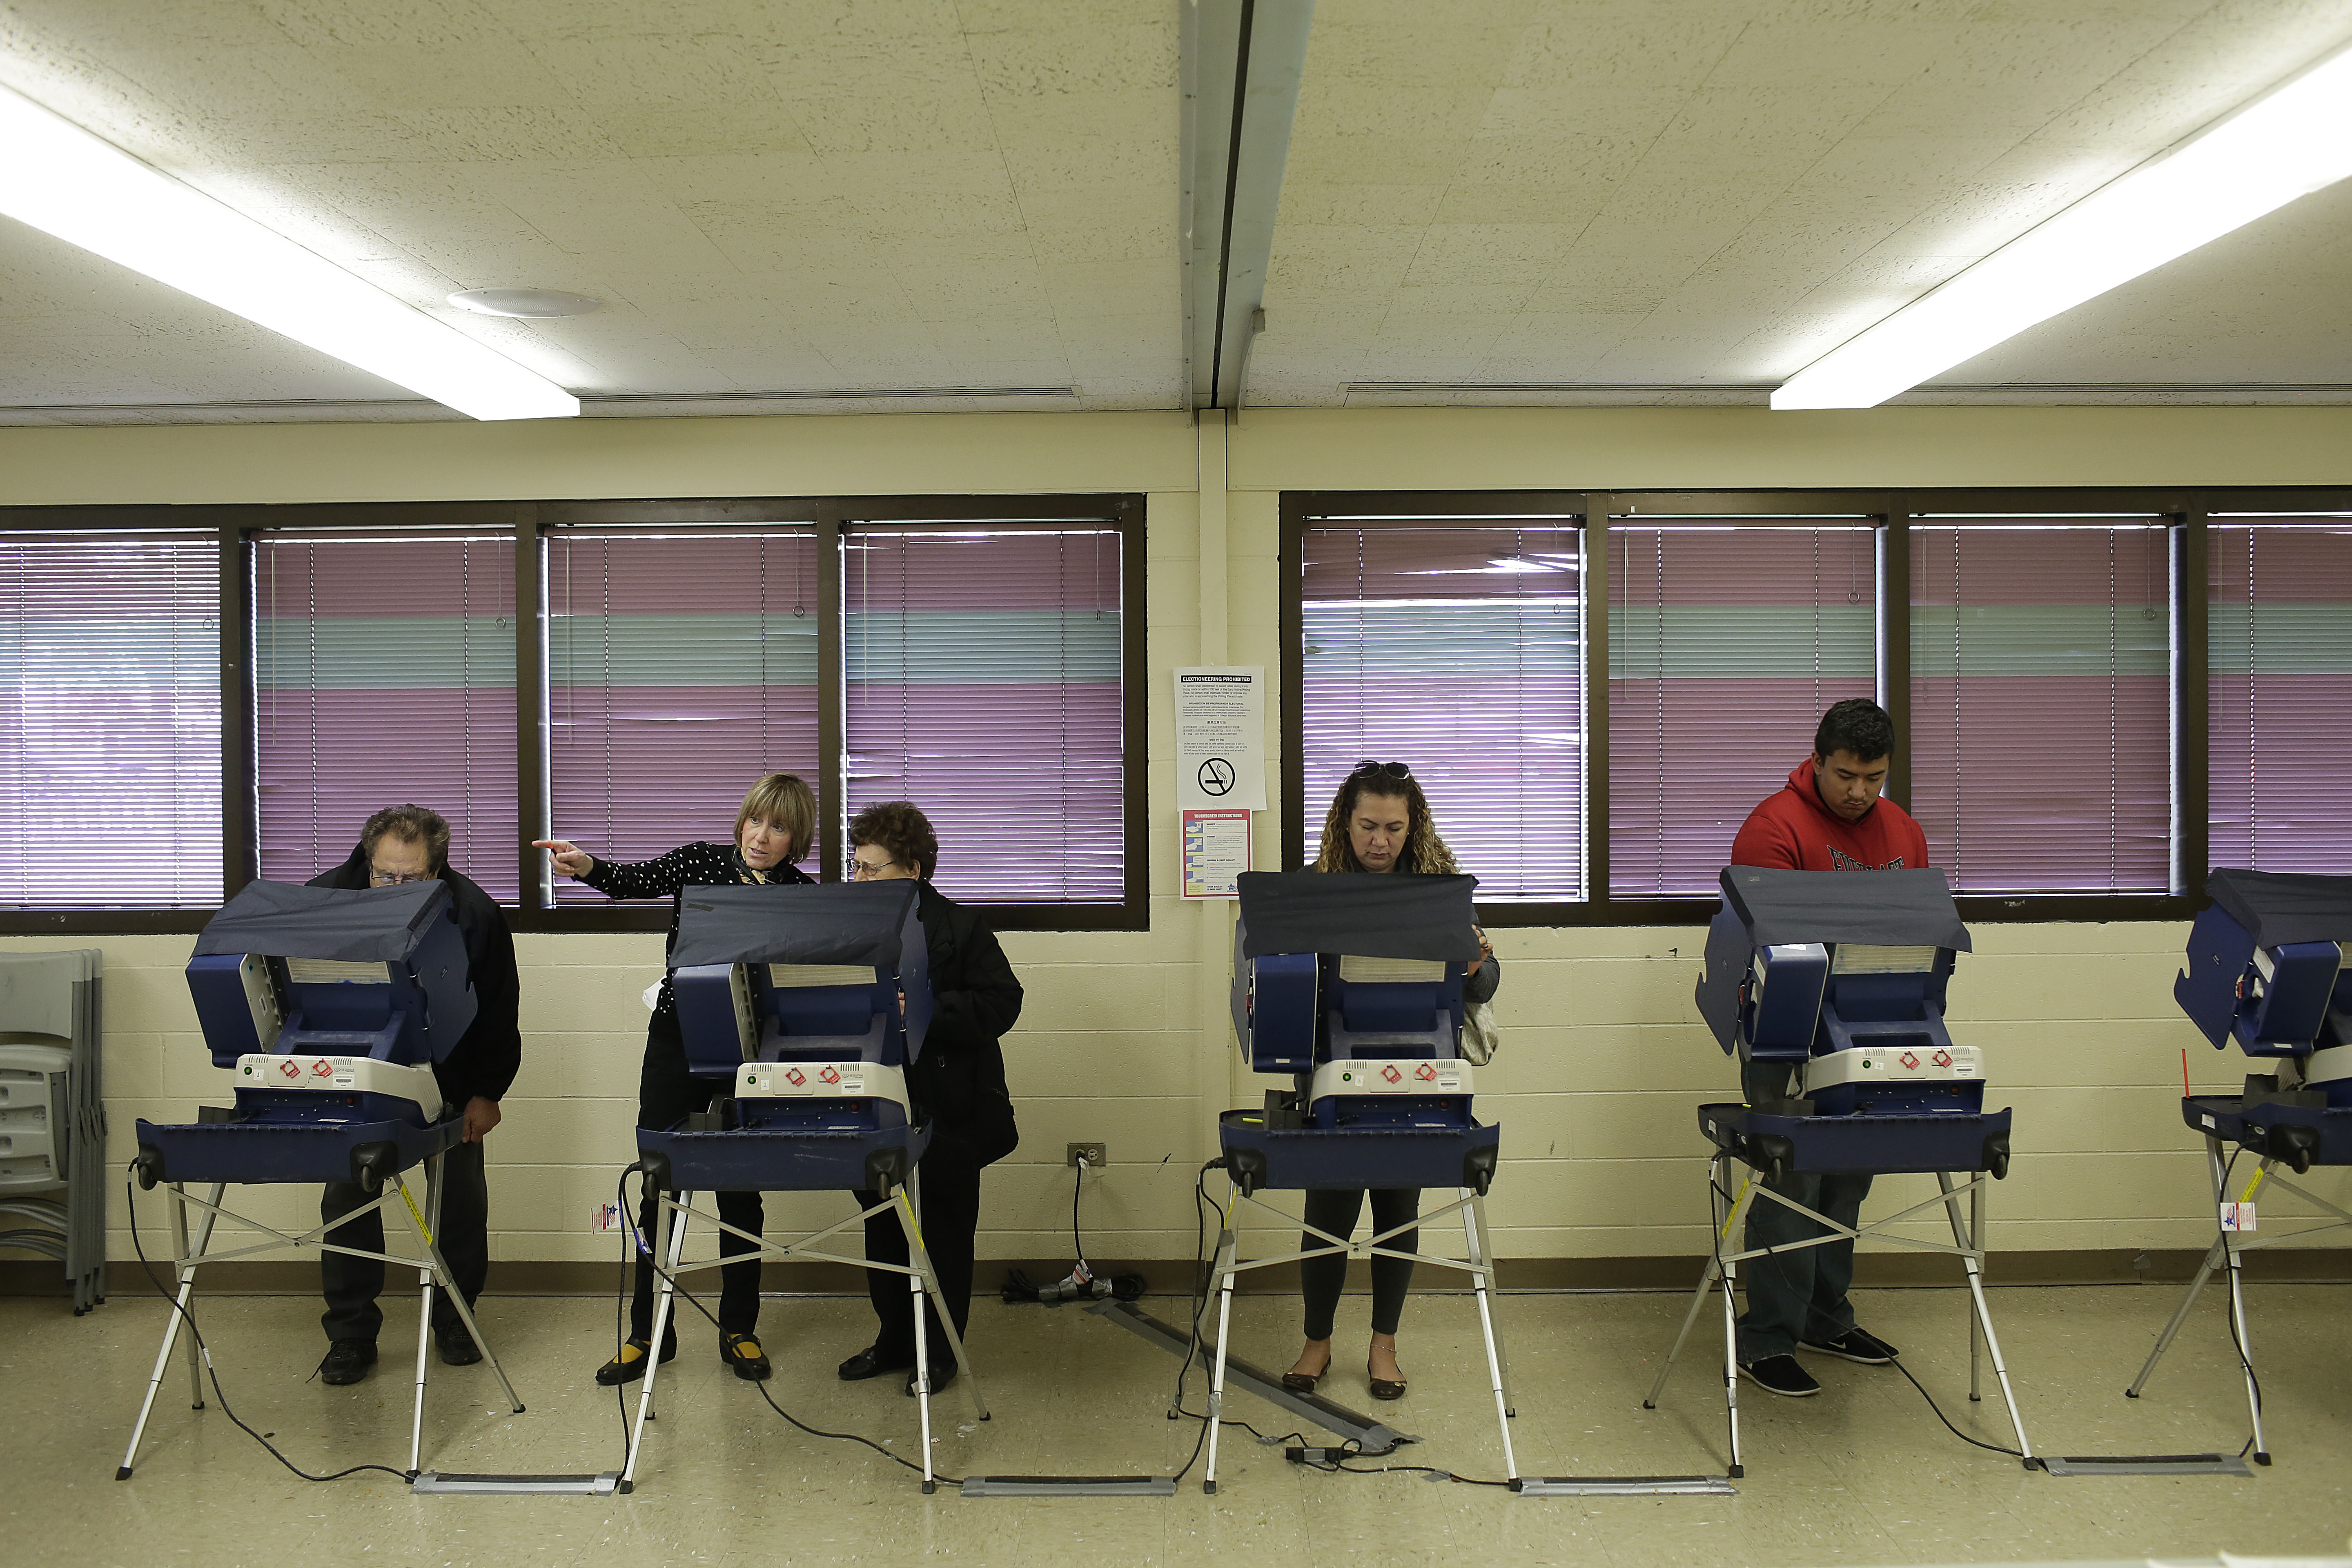 Voters cast their ballot during early voting at a polling station on October 31, 2016 in Chicago, Illinois.JOSHUA LOTT—AFP/Getty Images